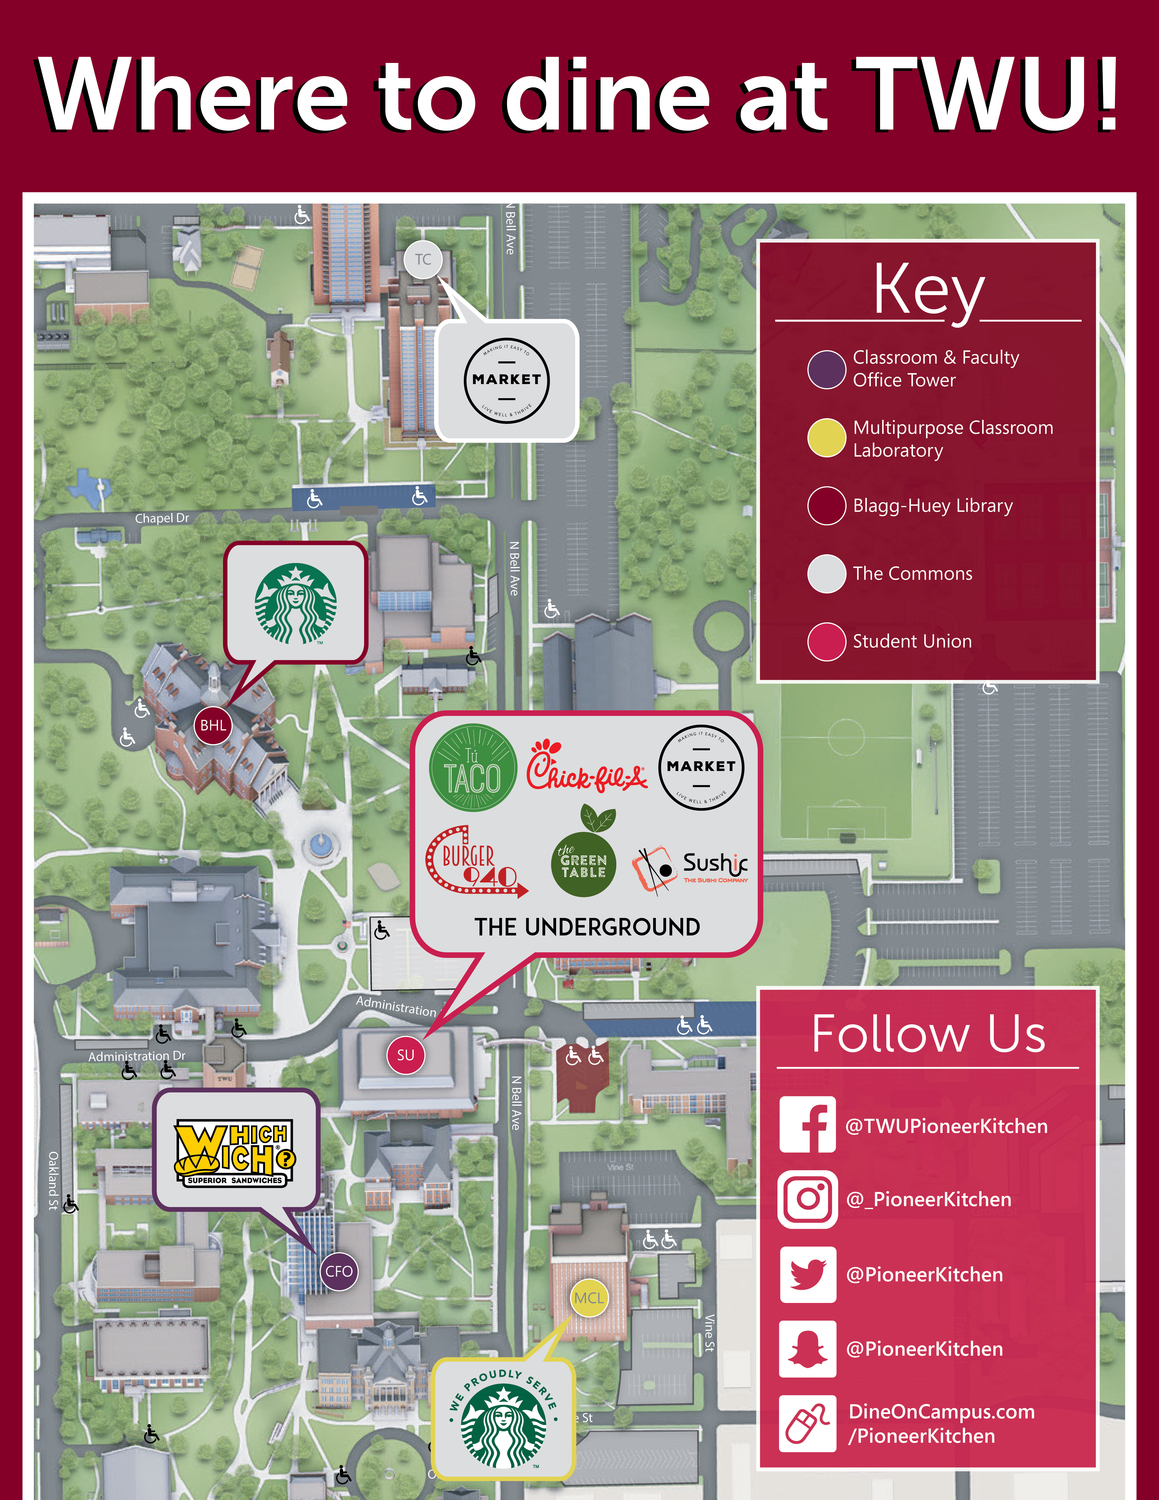 Dine On Campus at Texas Woman's University Scf Denton Campus Map on